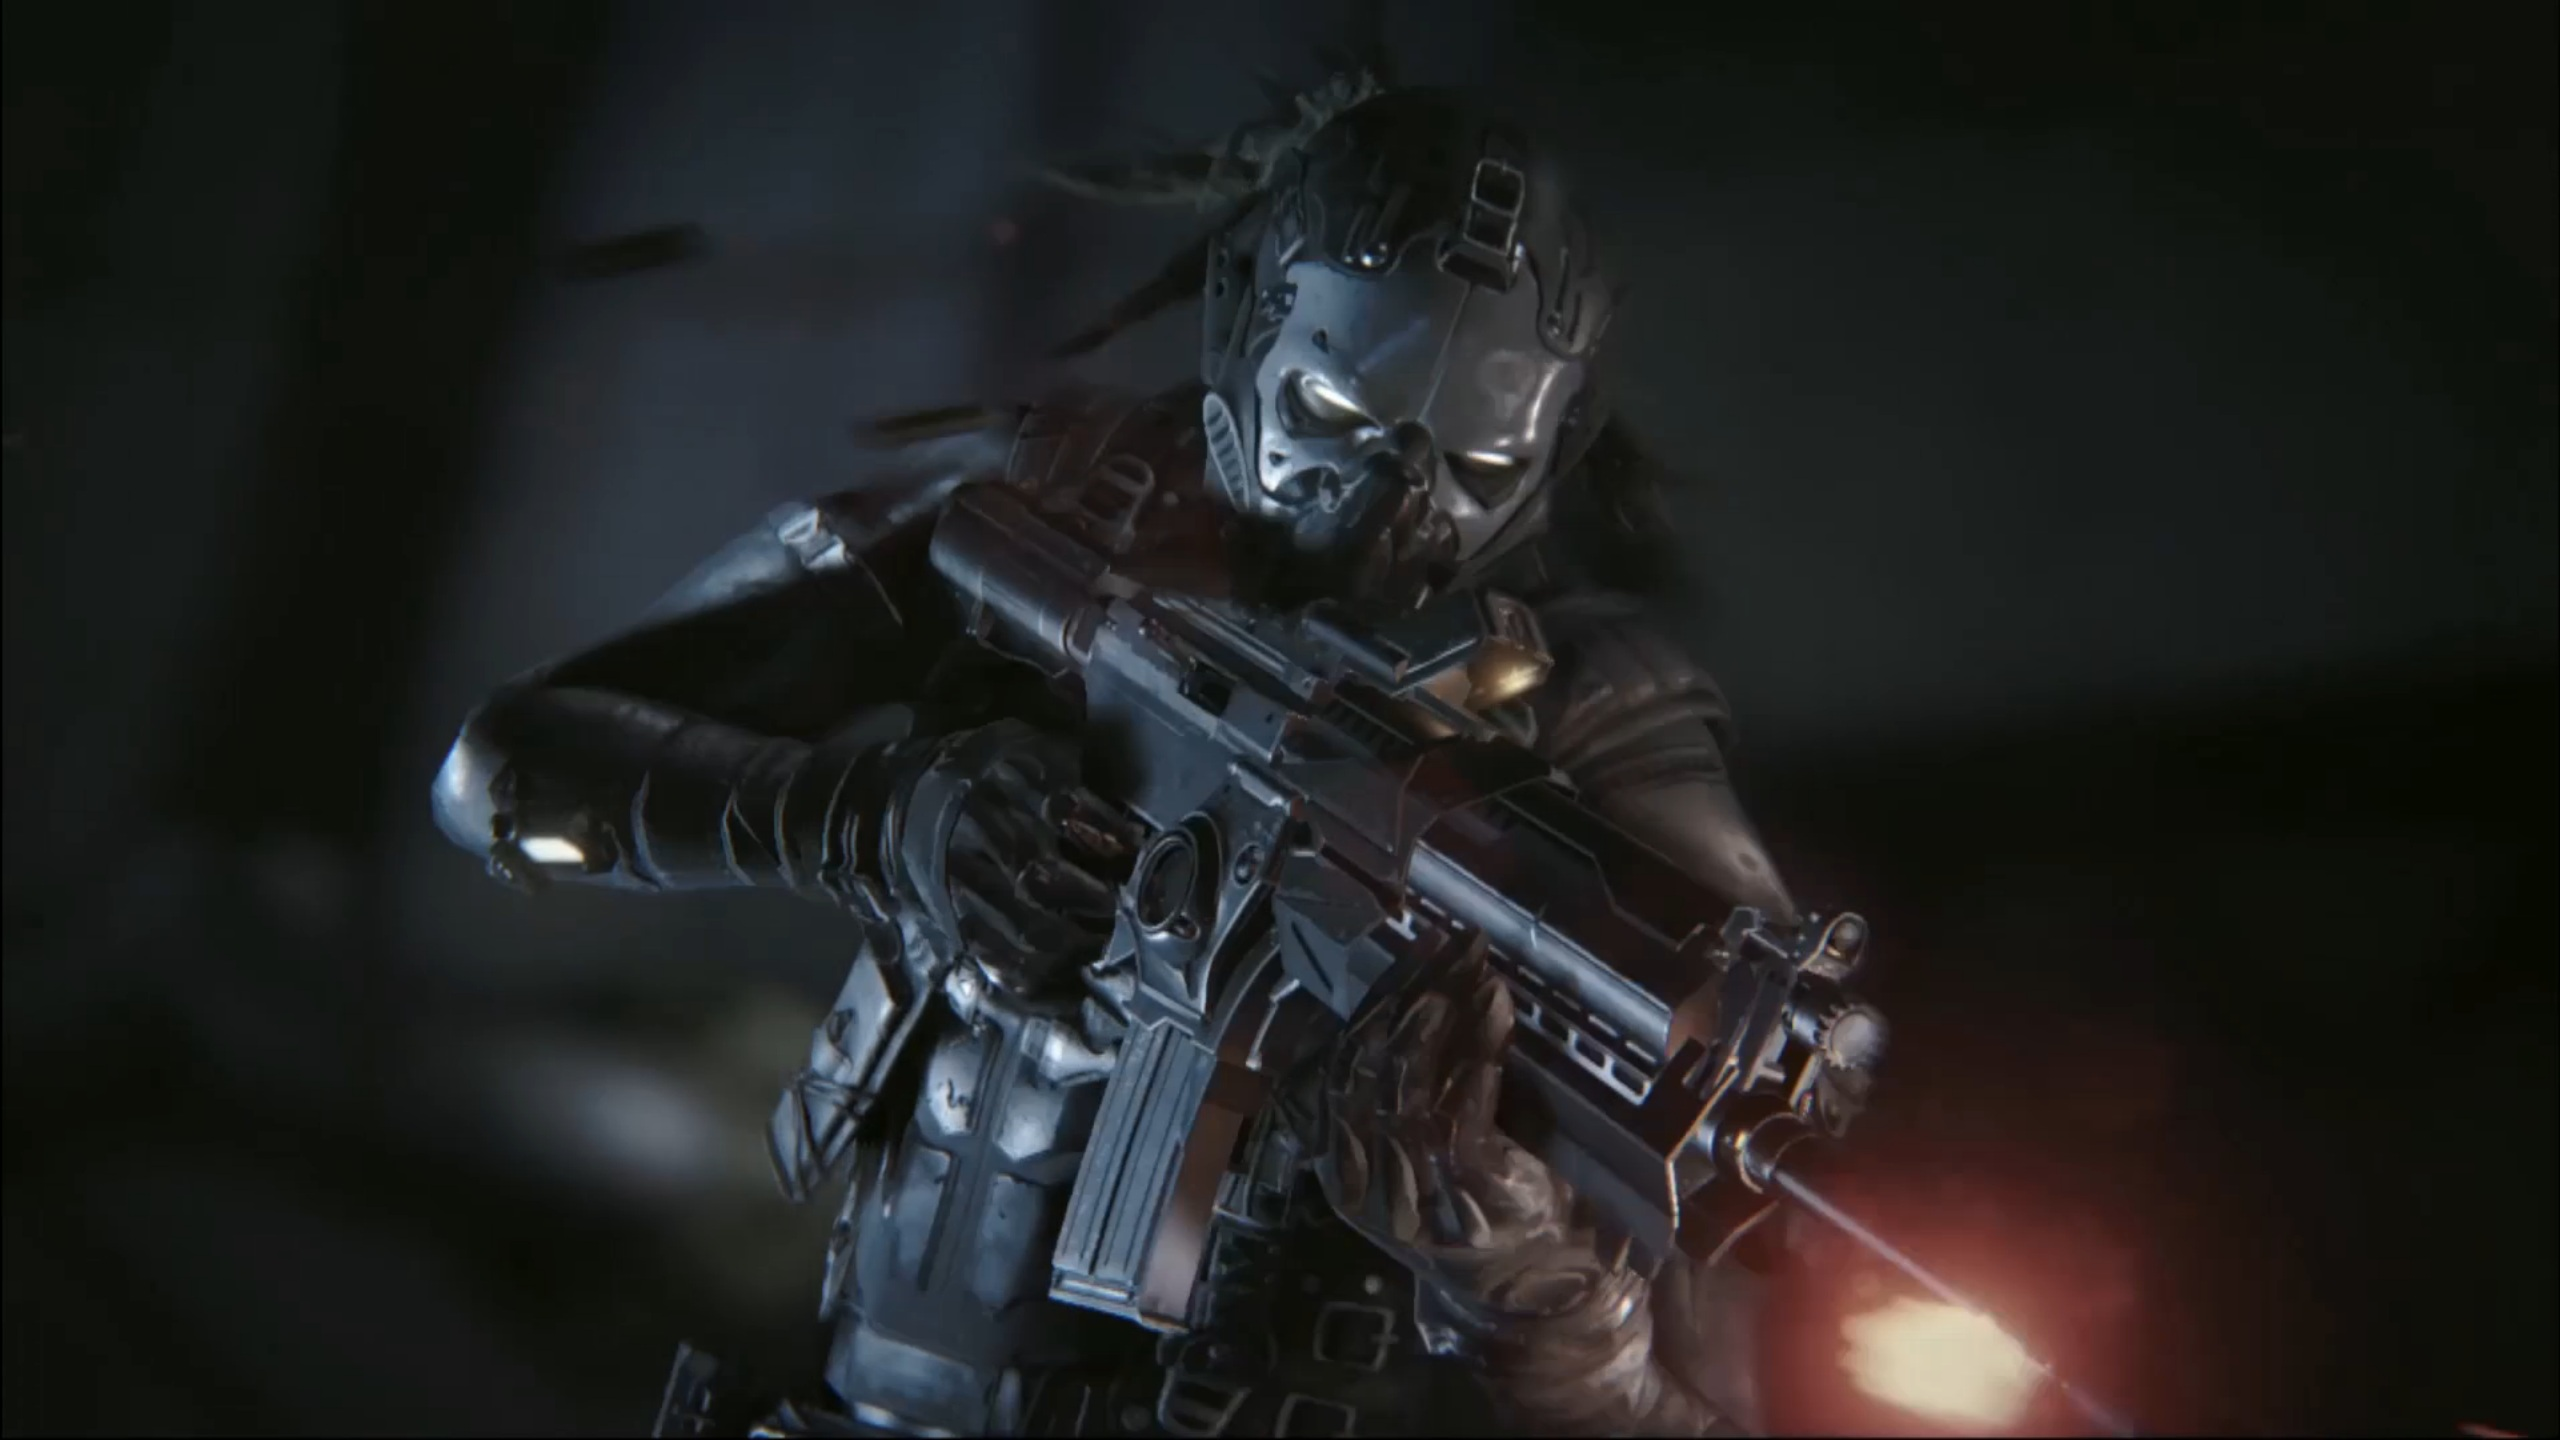 """At this years GDC, NVIDIA and EPIC games partnered up to showcase their latest Unreal Engine 4 demo known as """"infiltrator"""" on the GeForce GTX 680 GPU."""